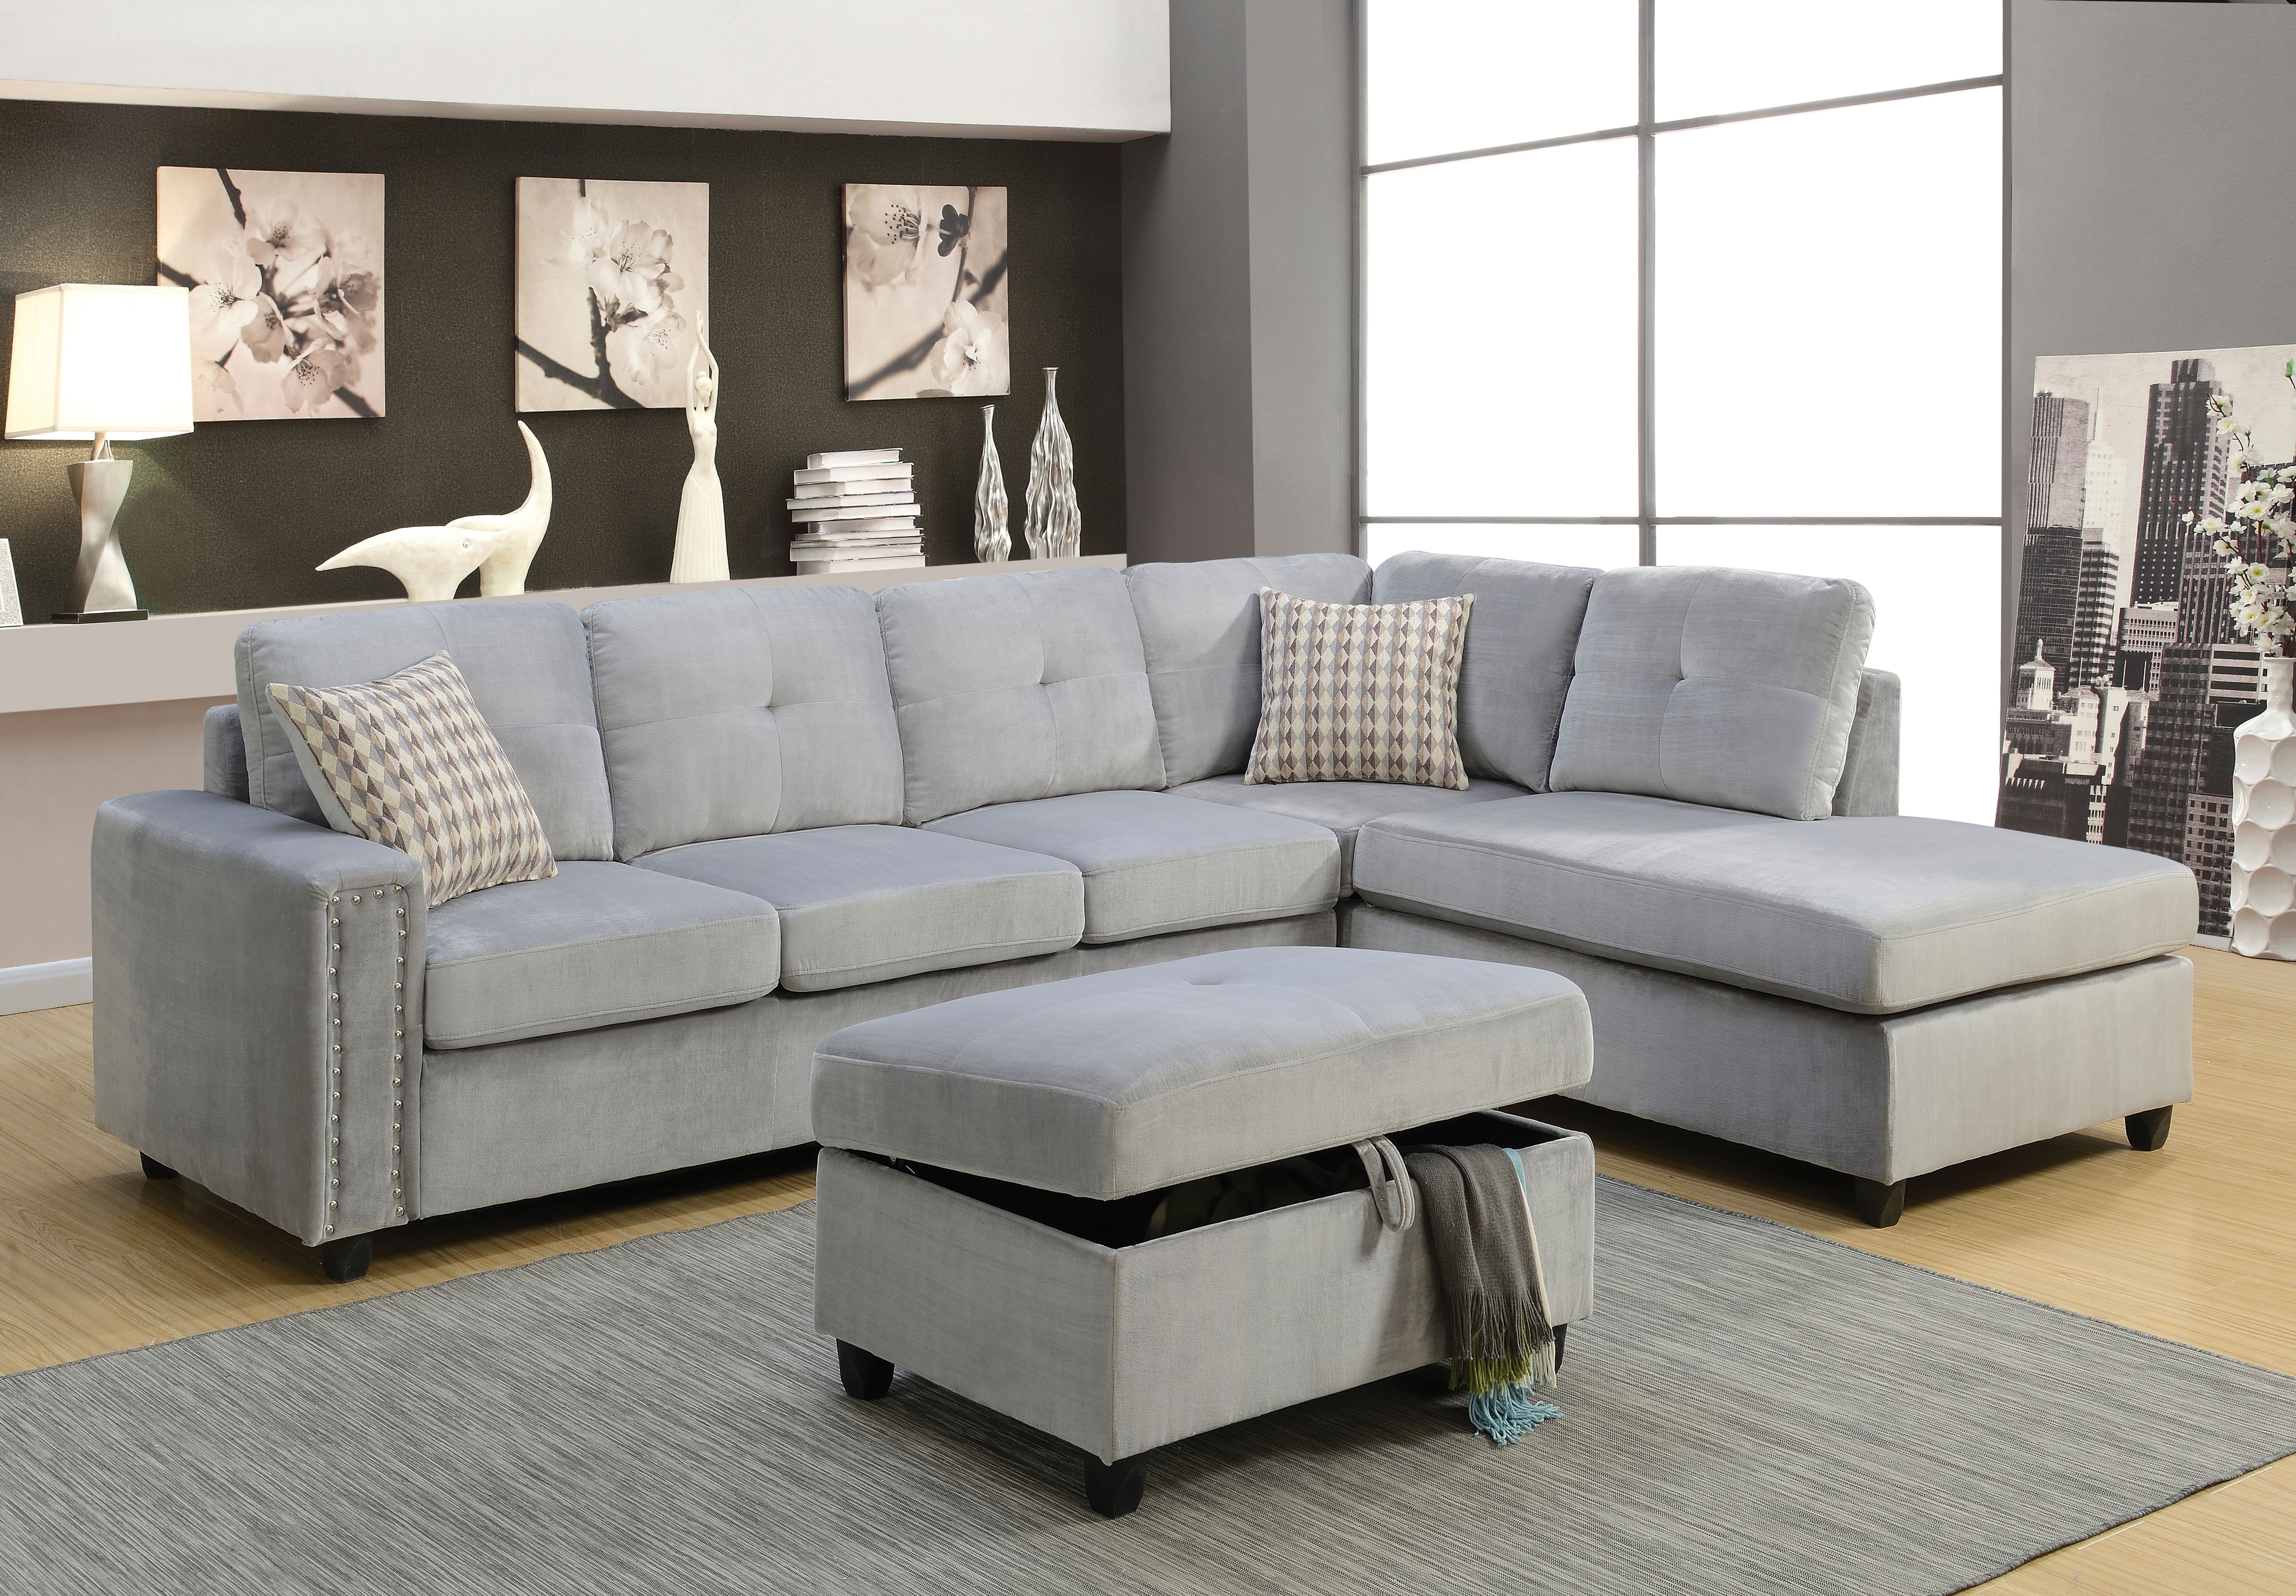 Grey Sectional Sofas Sofa Belville And Ottoman Leons Light Canada Pertaining To Light Grey Sectional Sofas (Image 5 of 10)